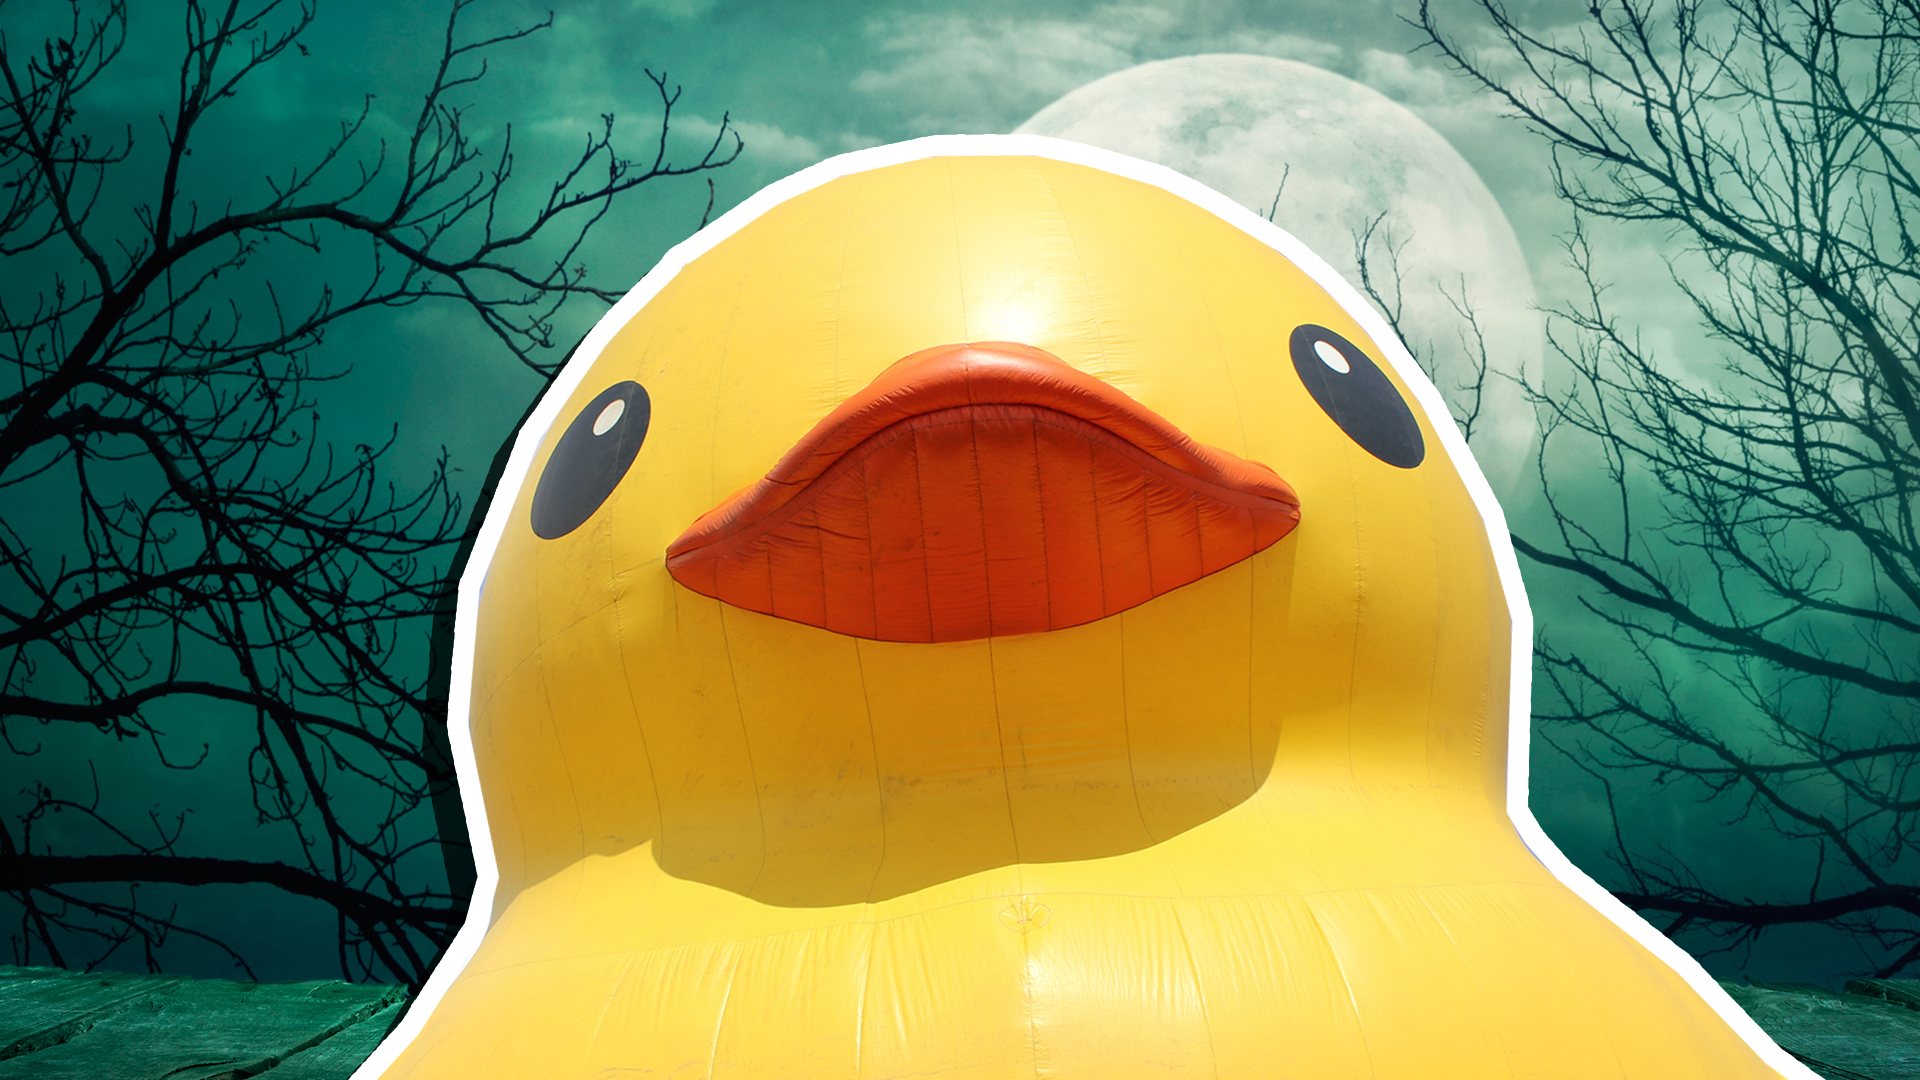 Large yellow inflatable duck in front of a full moon